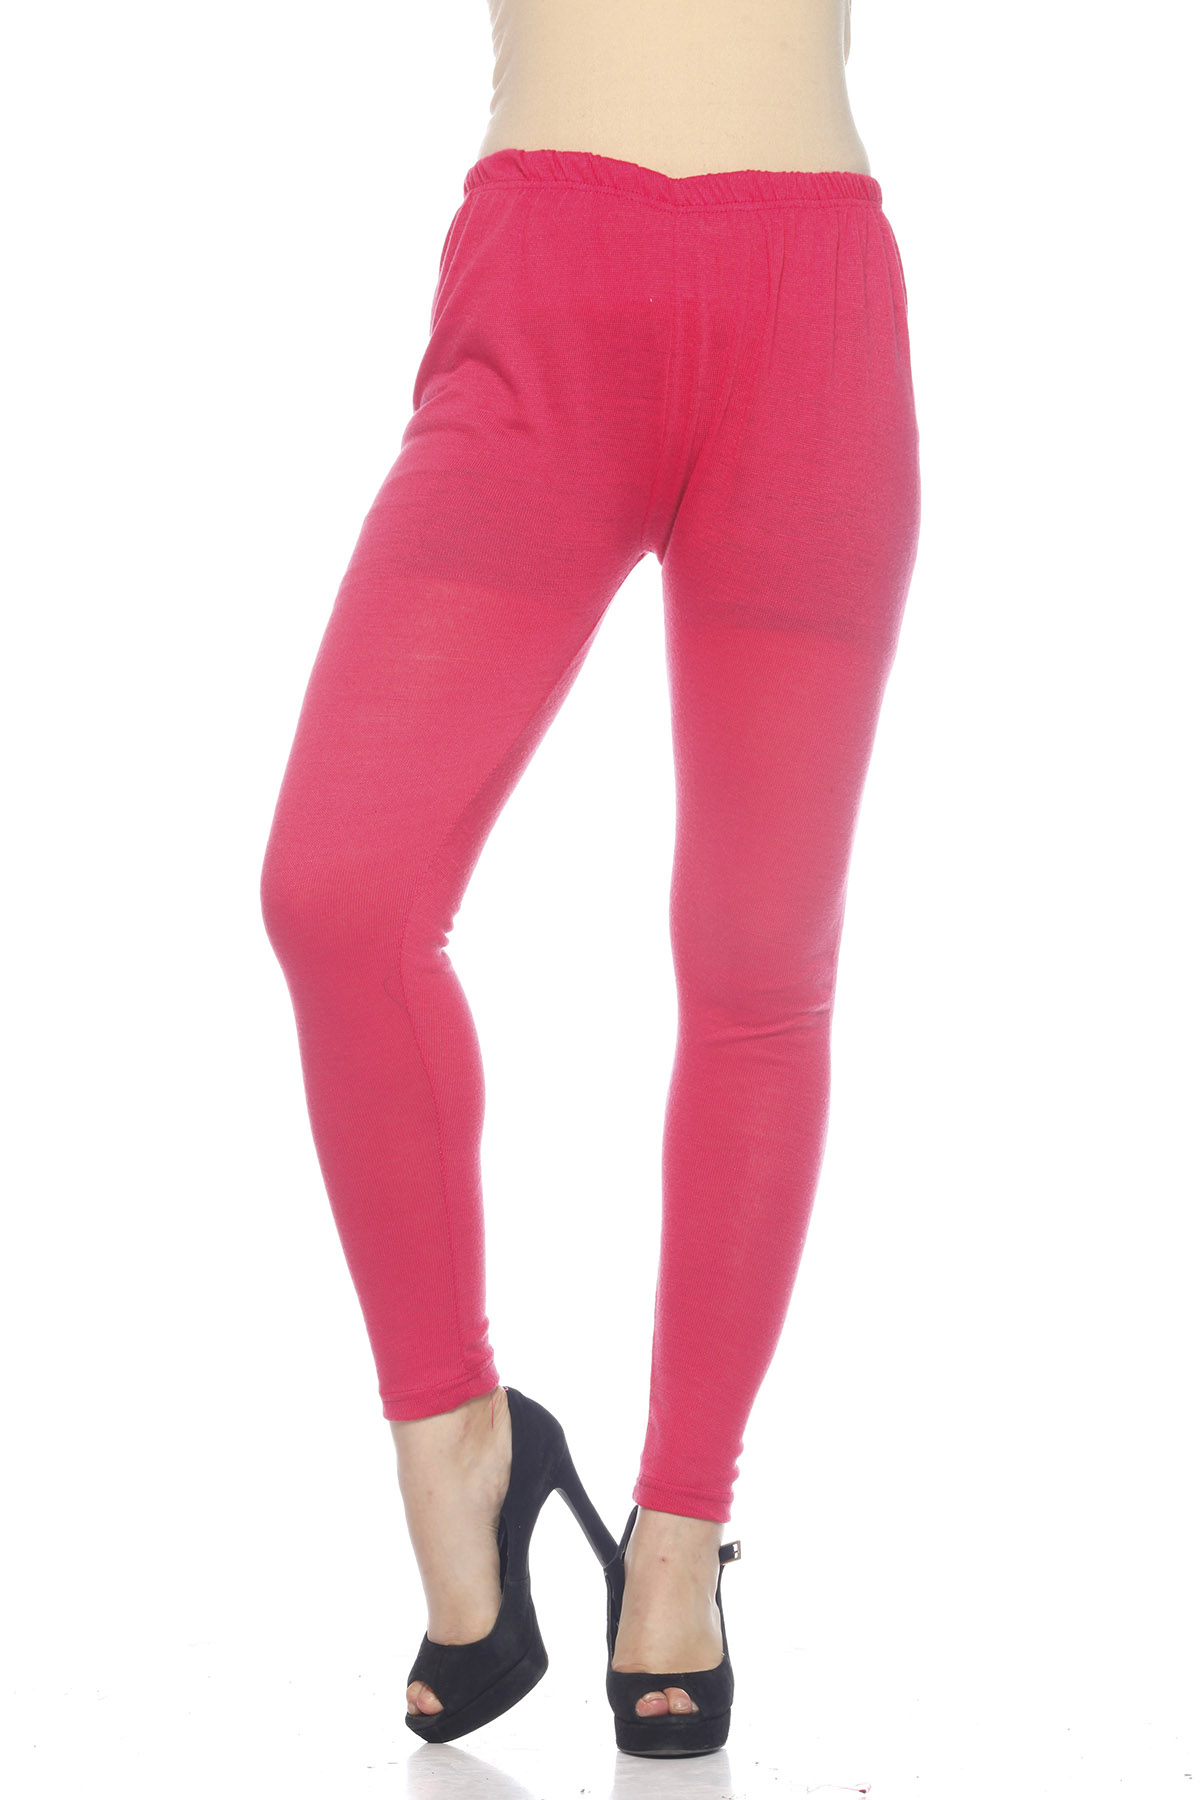 DS Pink Premium Soft Stretchable Free Size Woolen Leggings